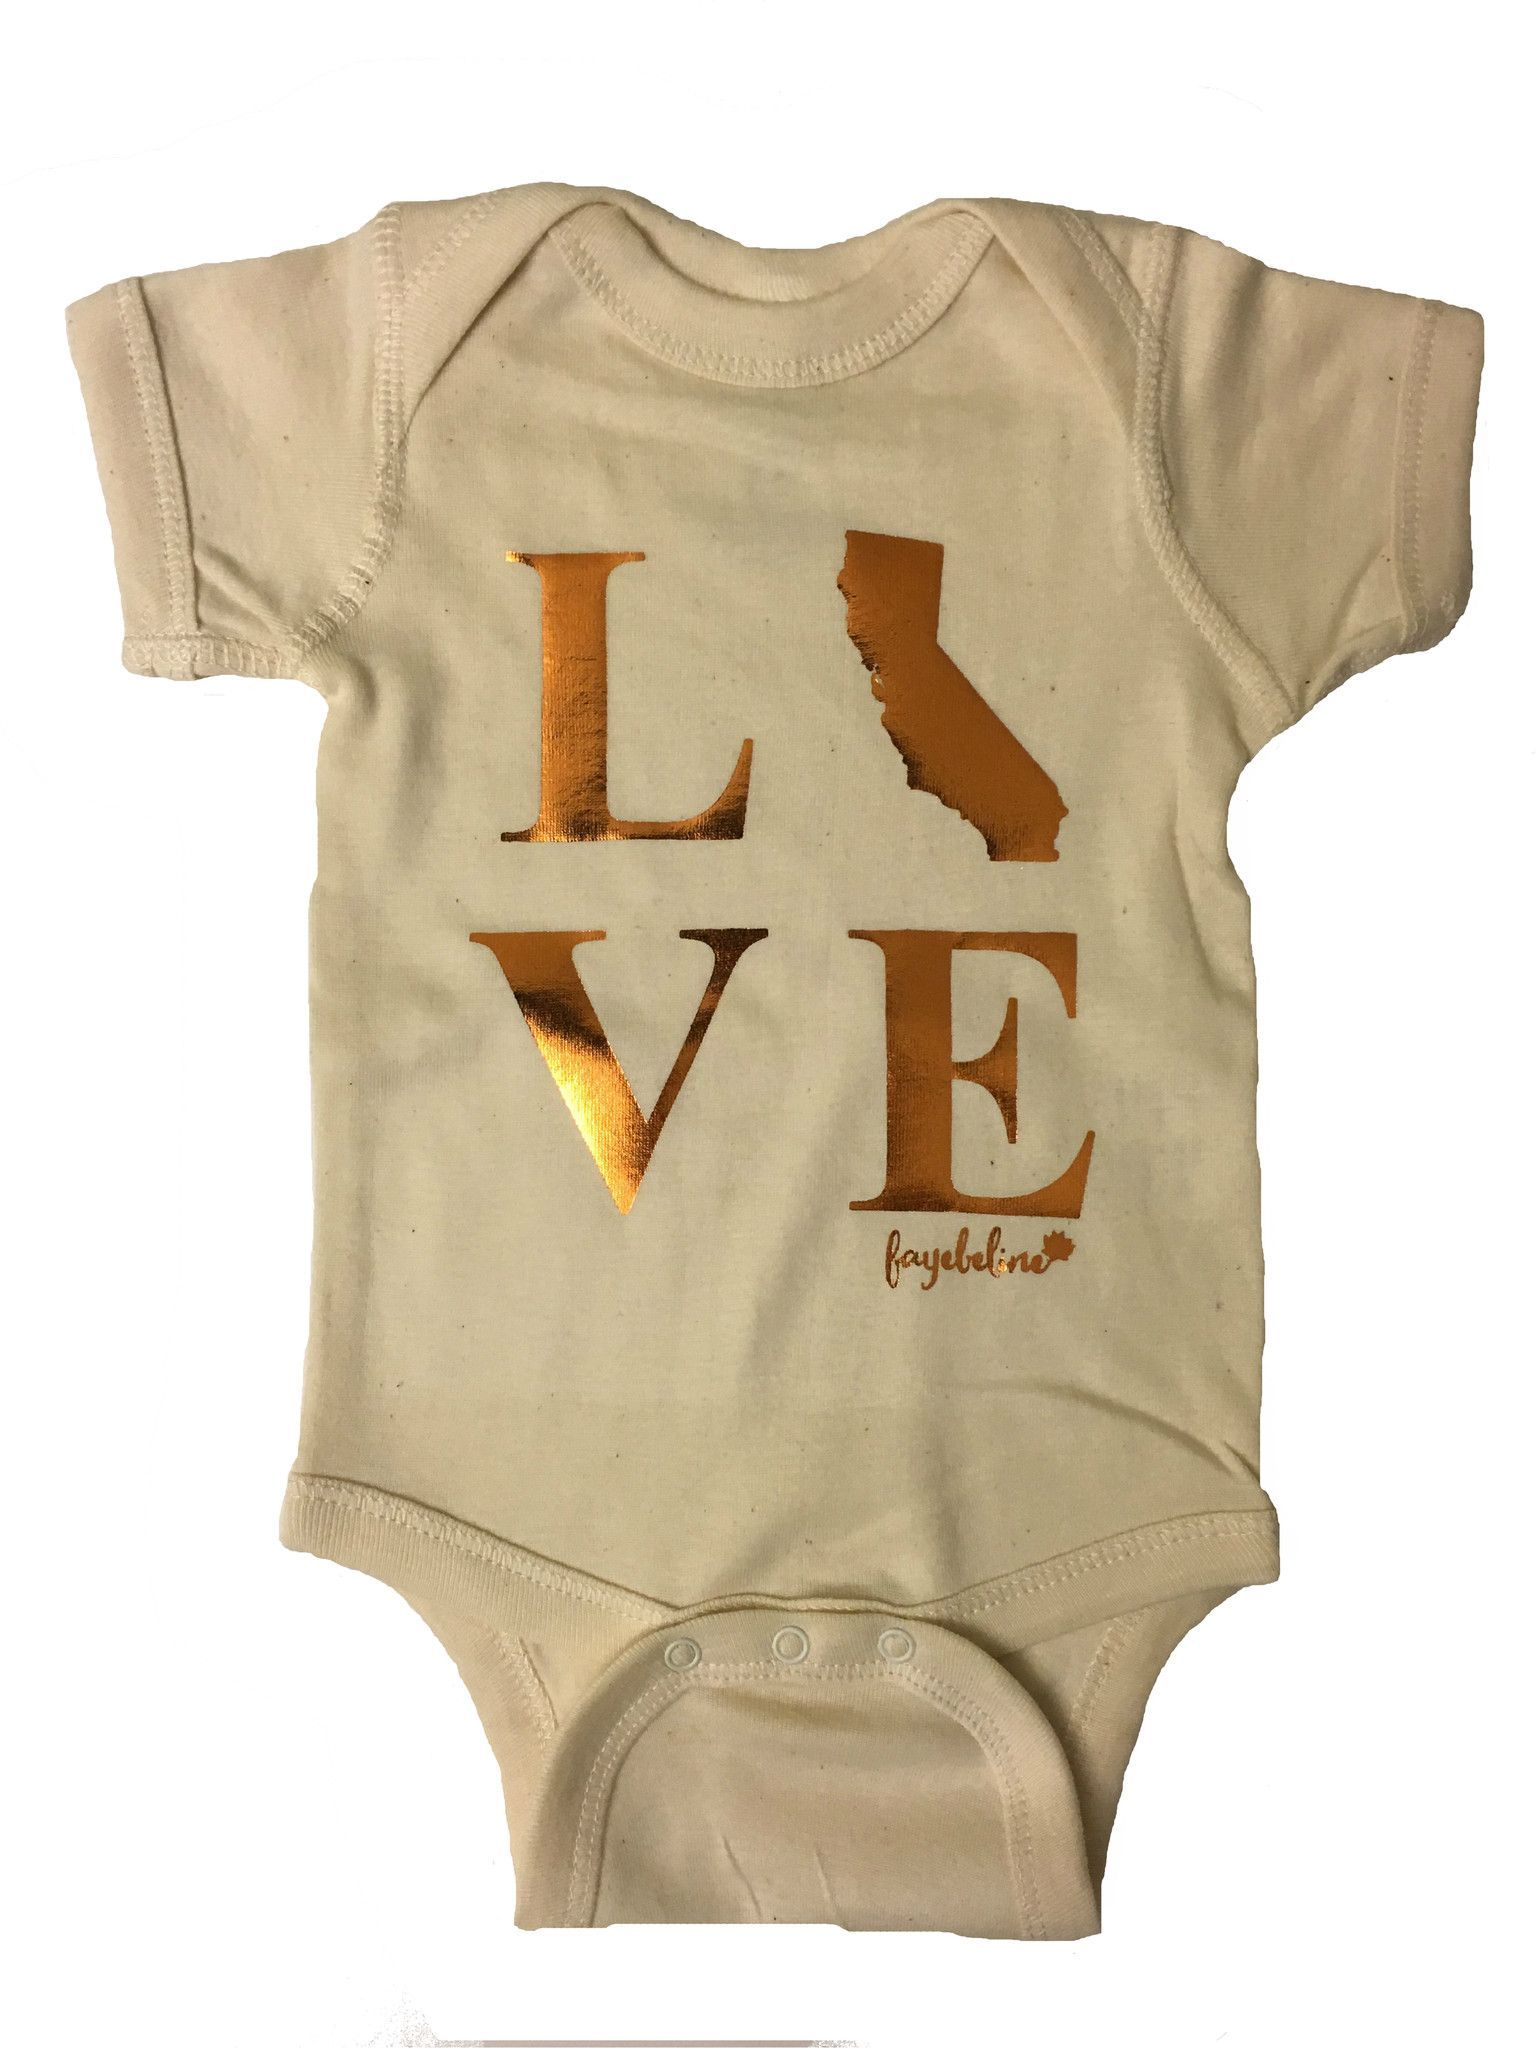 THE PERFECT BABY GIFT – Whether you are looking for the perfect